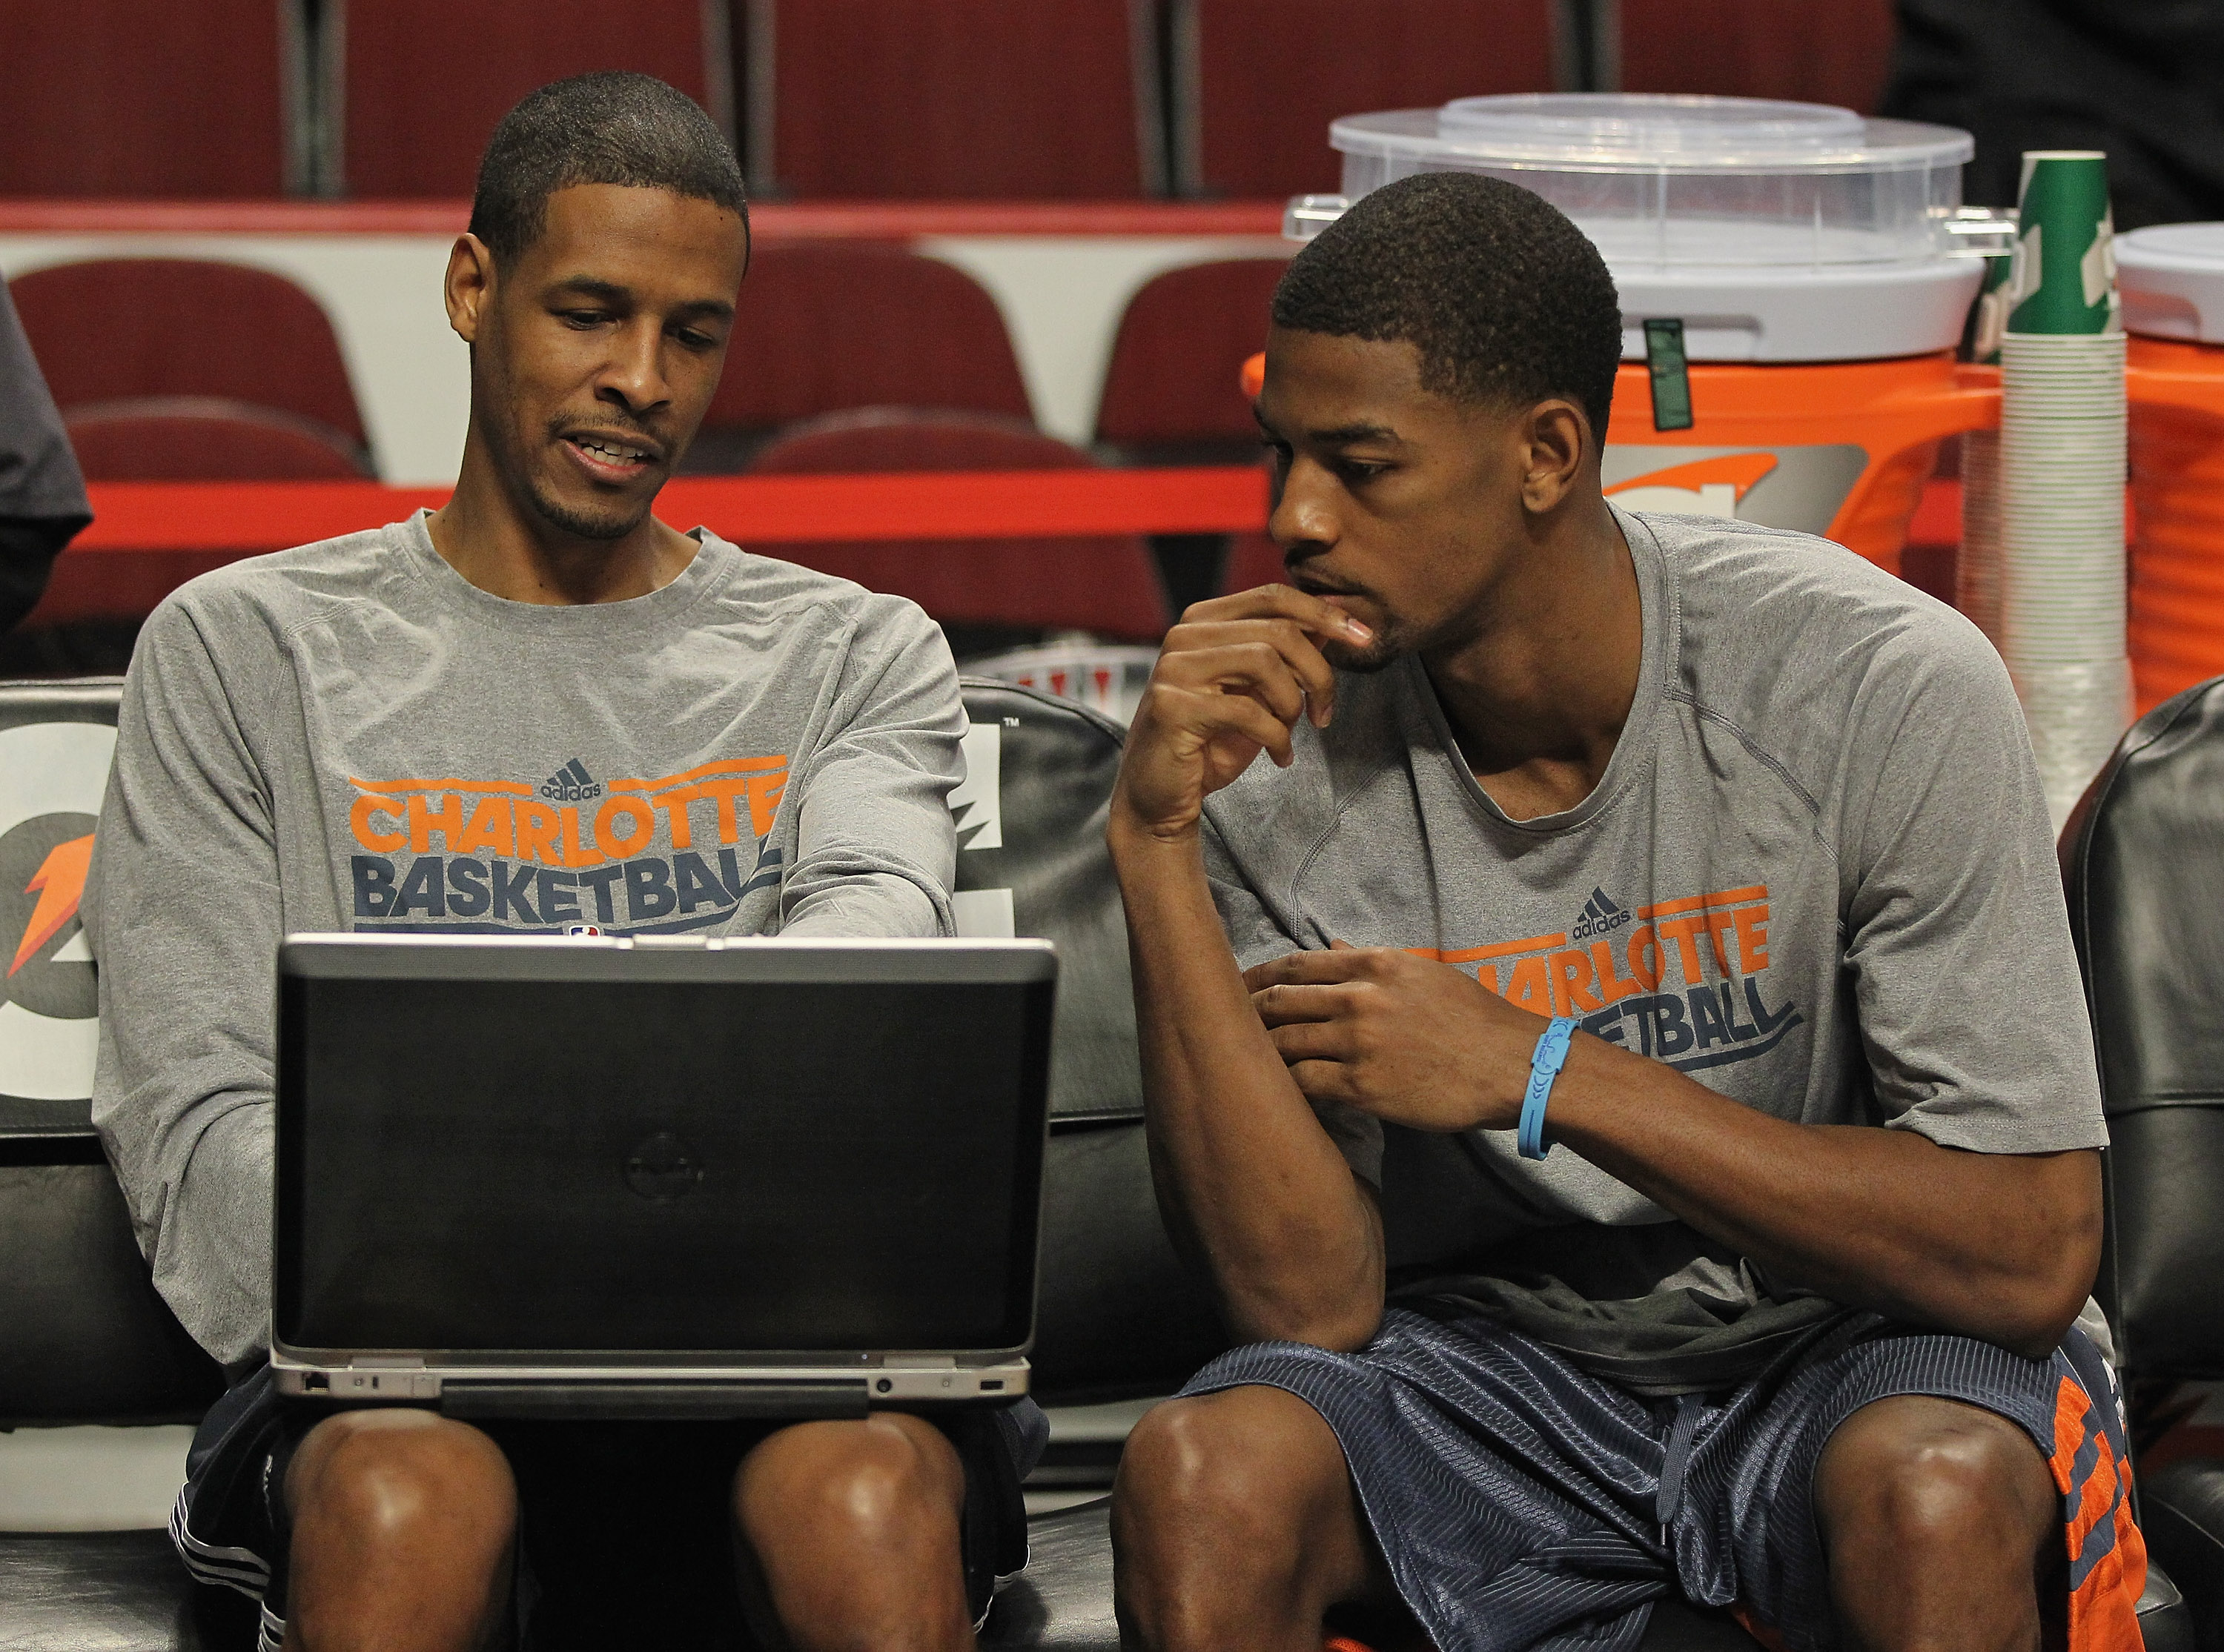 Recruiting Writers: Draft Day is Coming